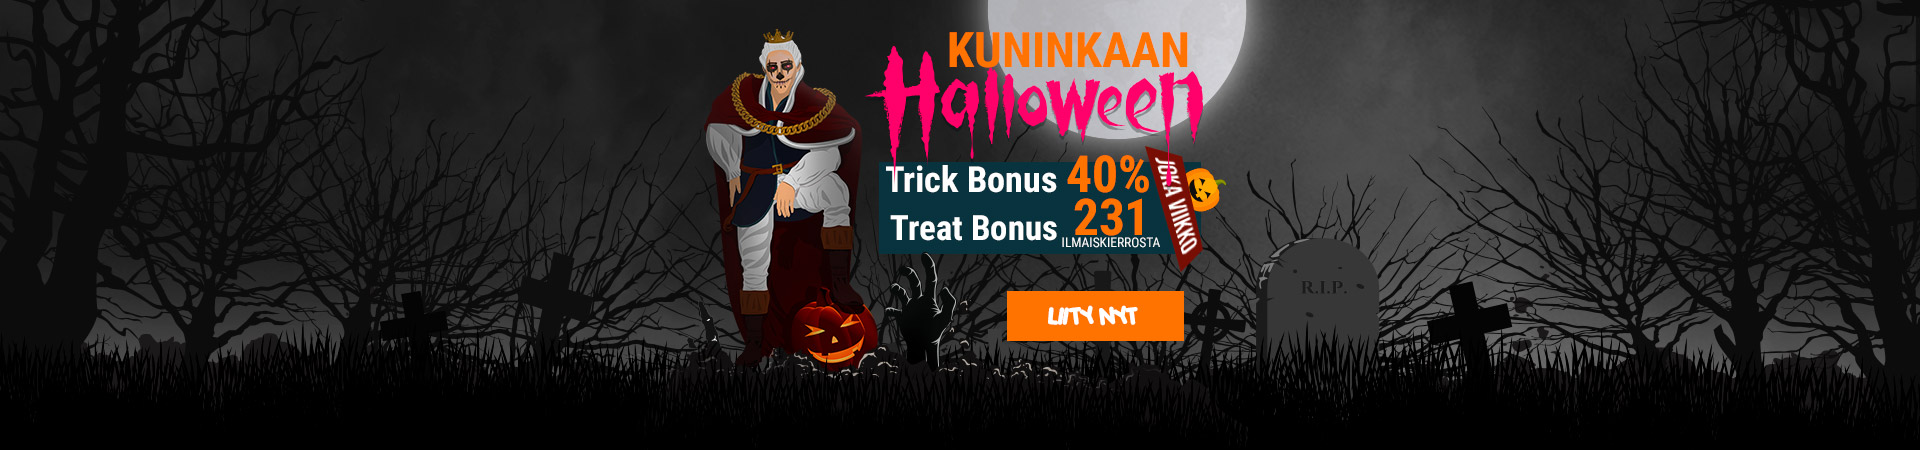 2020 10 King Billy Finnish King's Halloween 1920x450